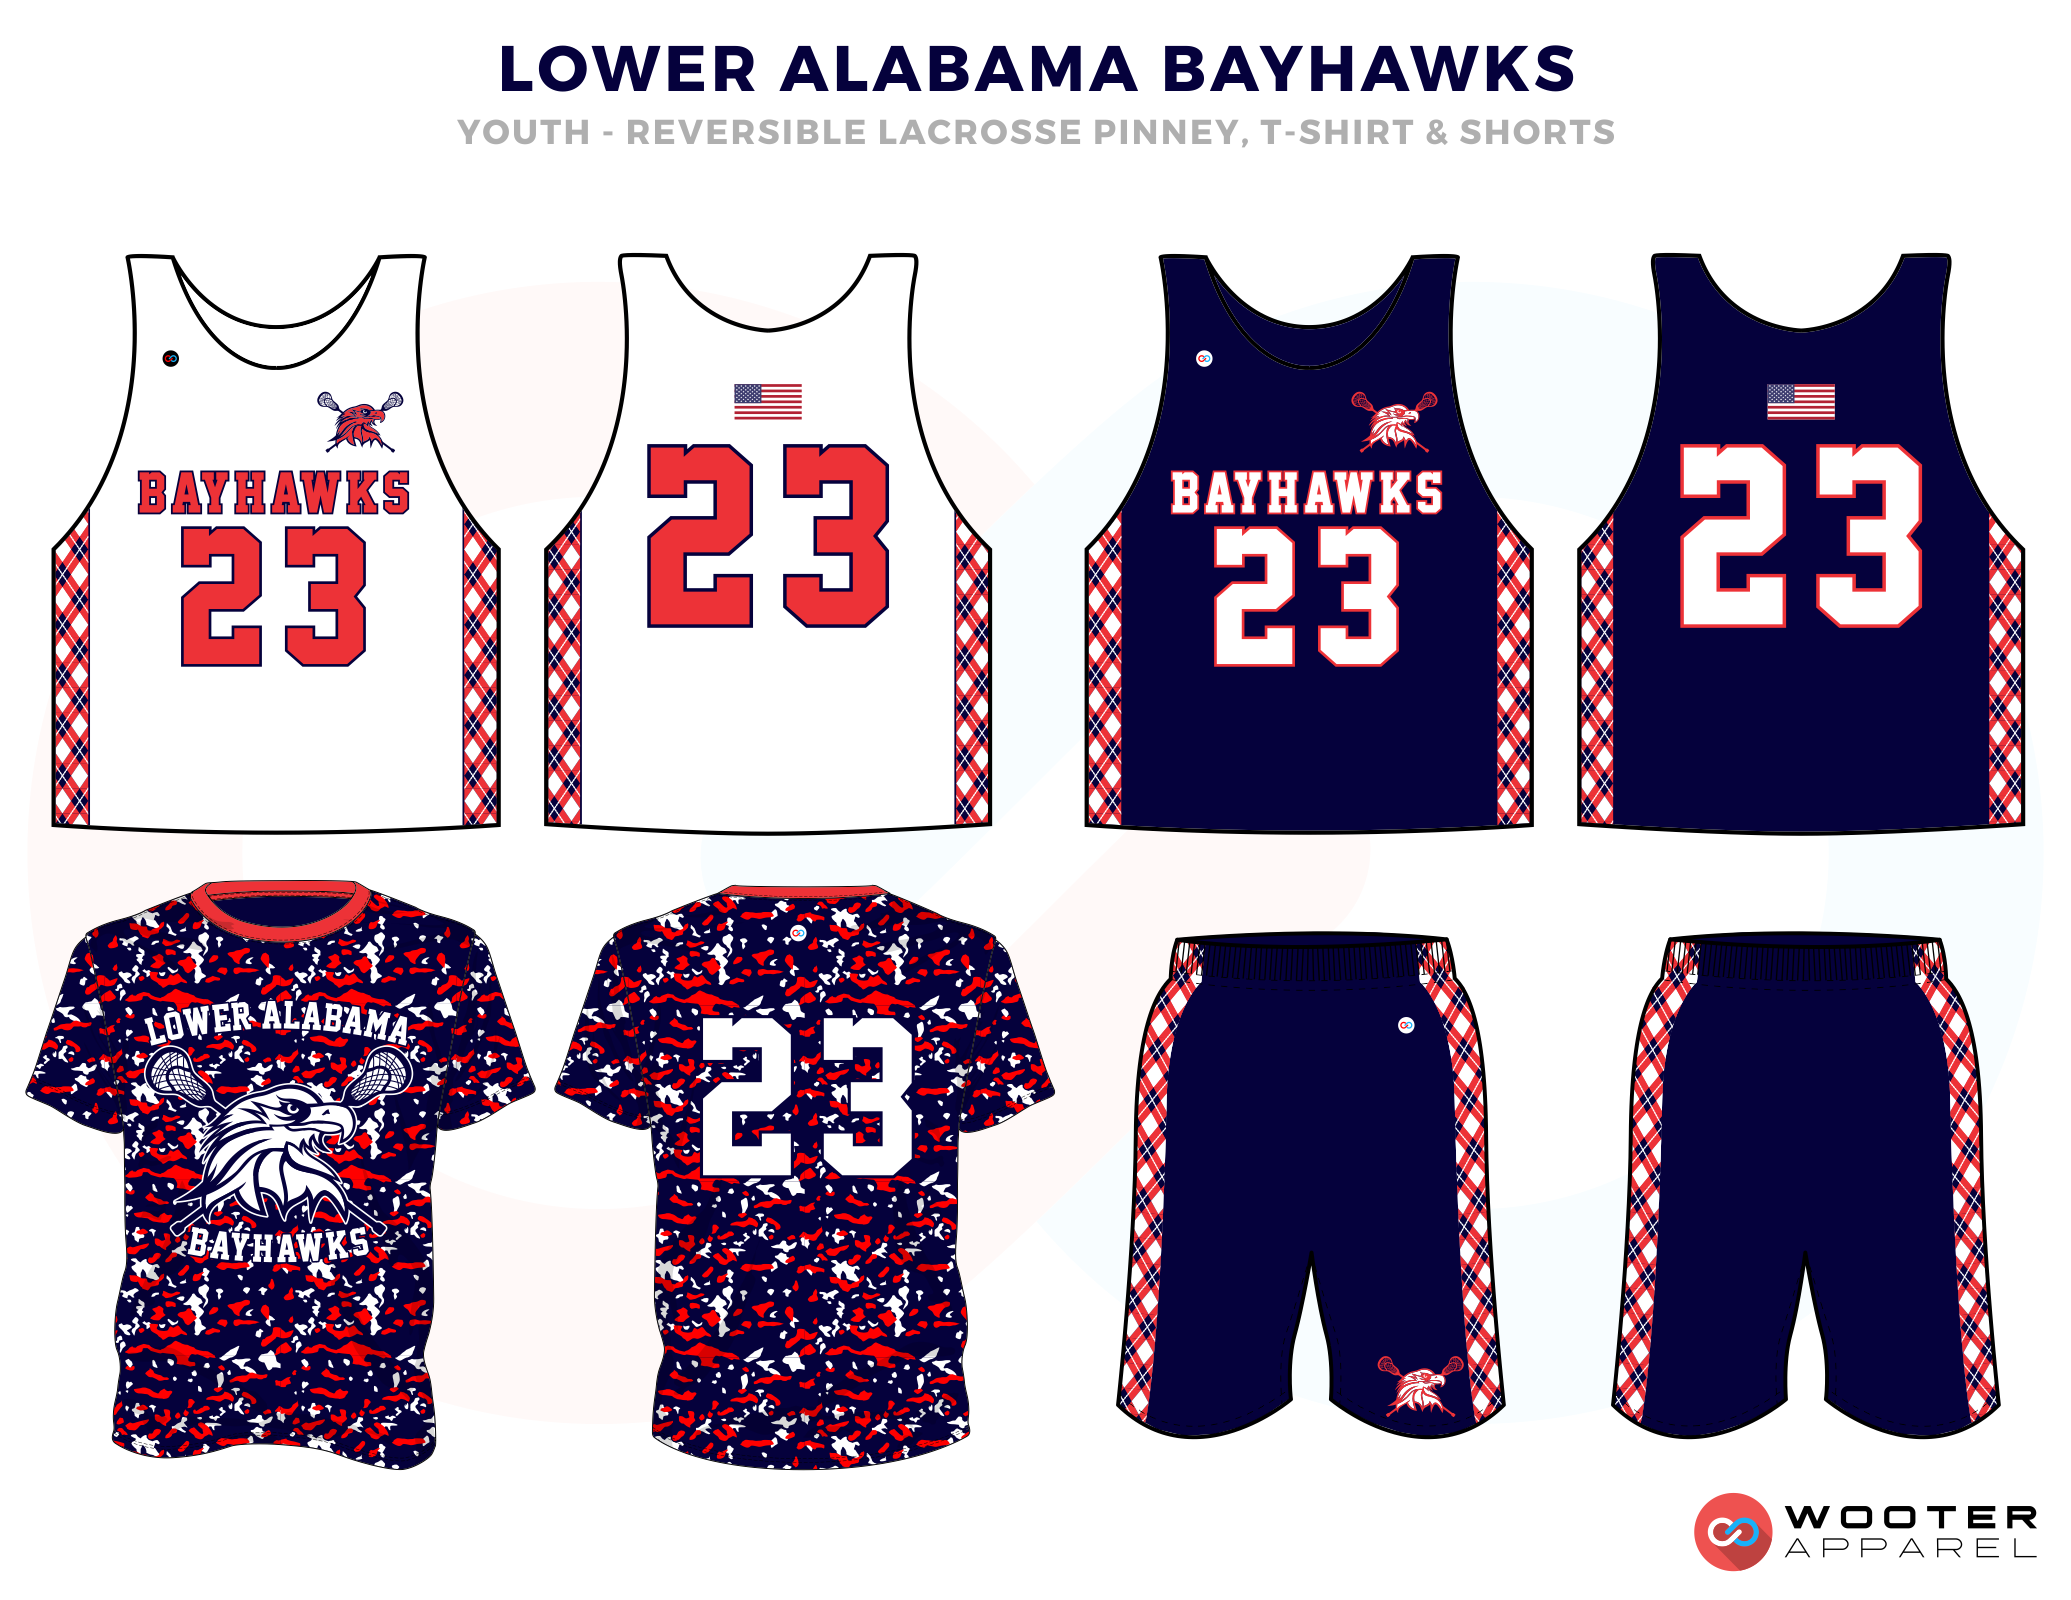 Lower Alabama Bayhawks Blue Red and White Lacrosse Uniforms, Reversible Pinnies, T Shirts, Jerseys, Shorts